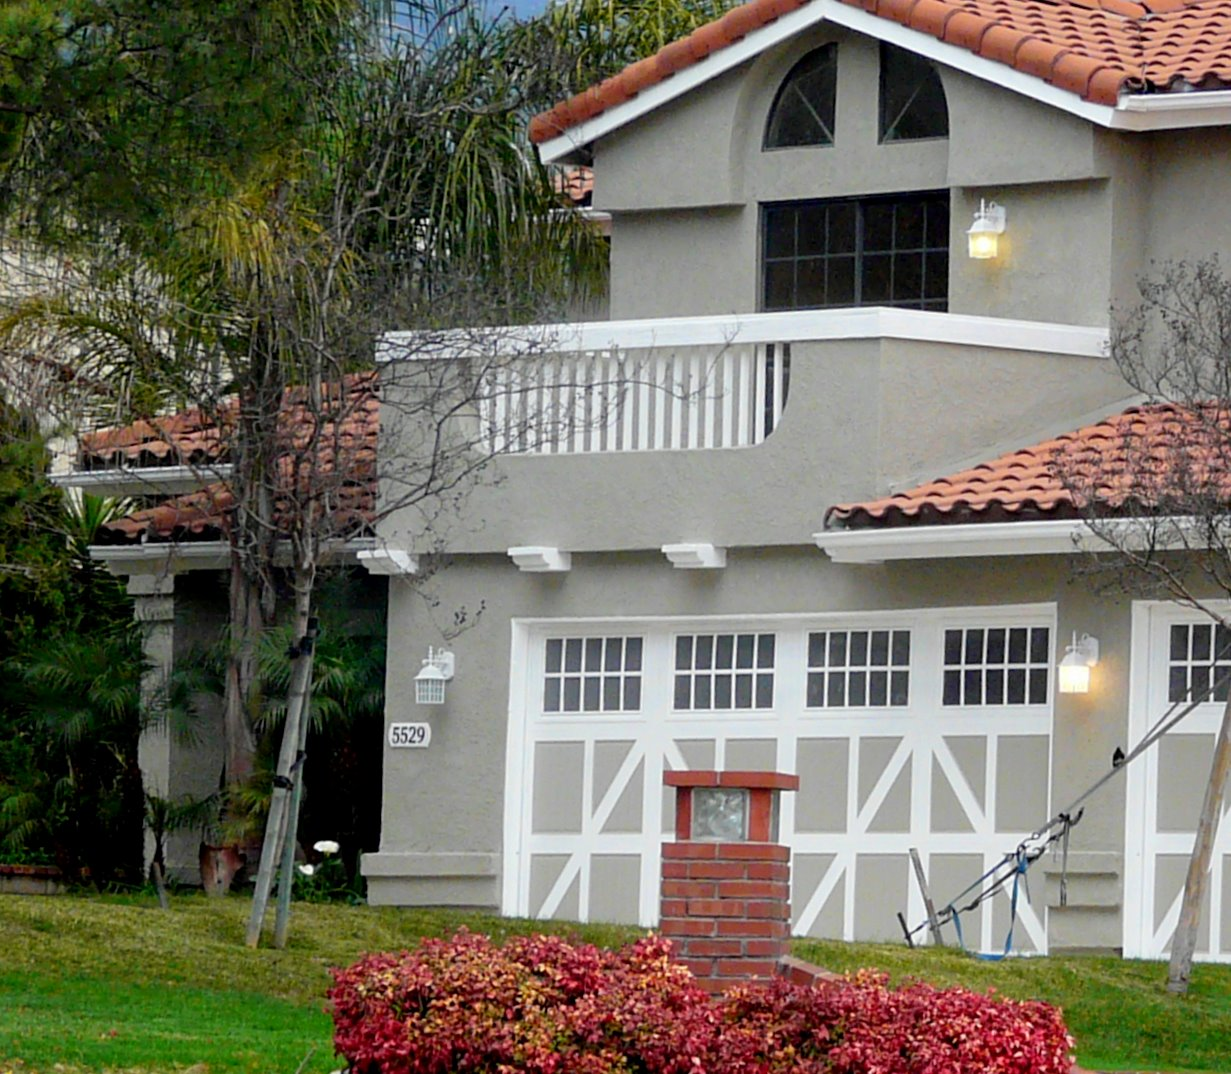 What Color Do I Paint My House: What Exterior Color Palette Should I Paint My Red-roofed